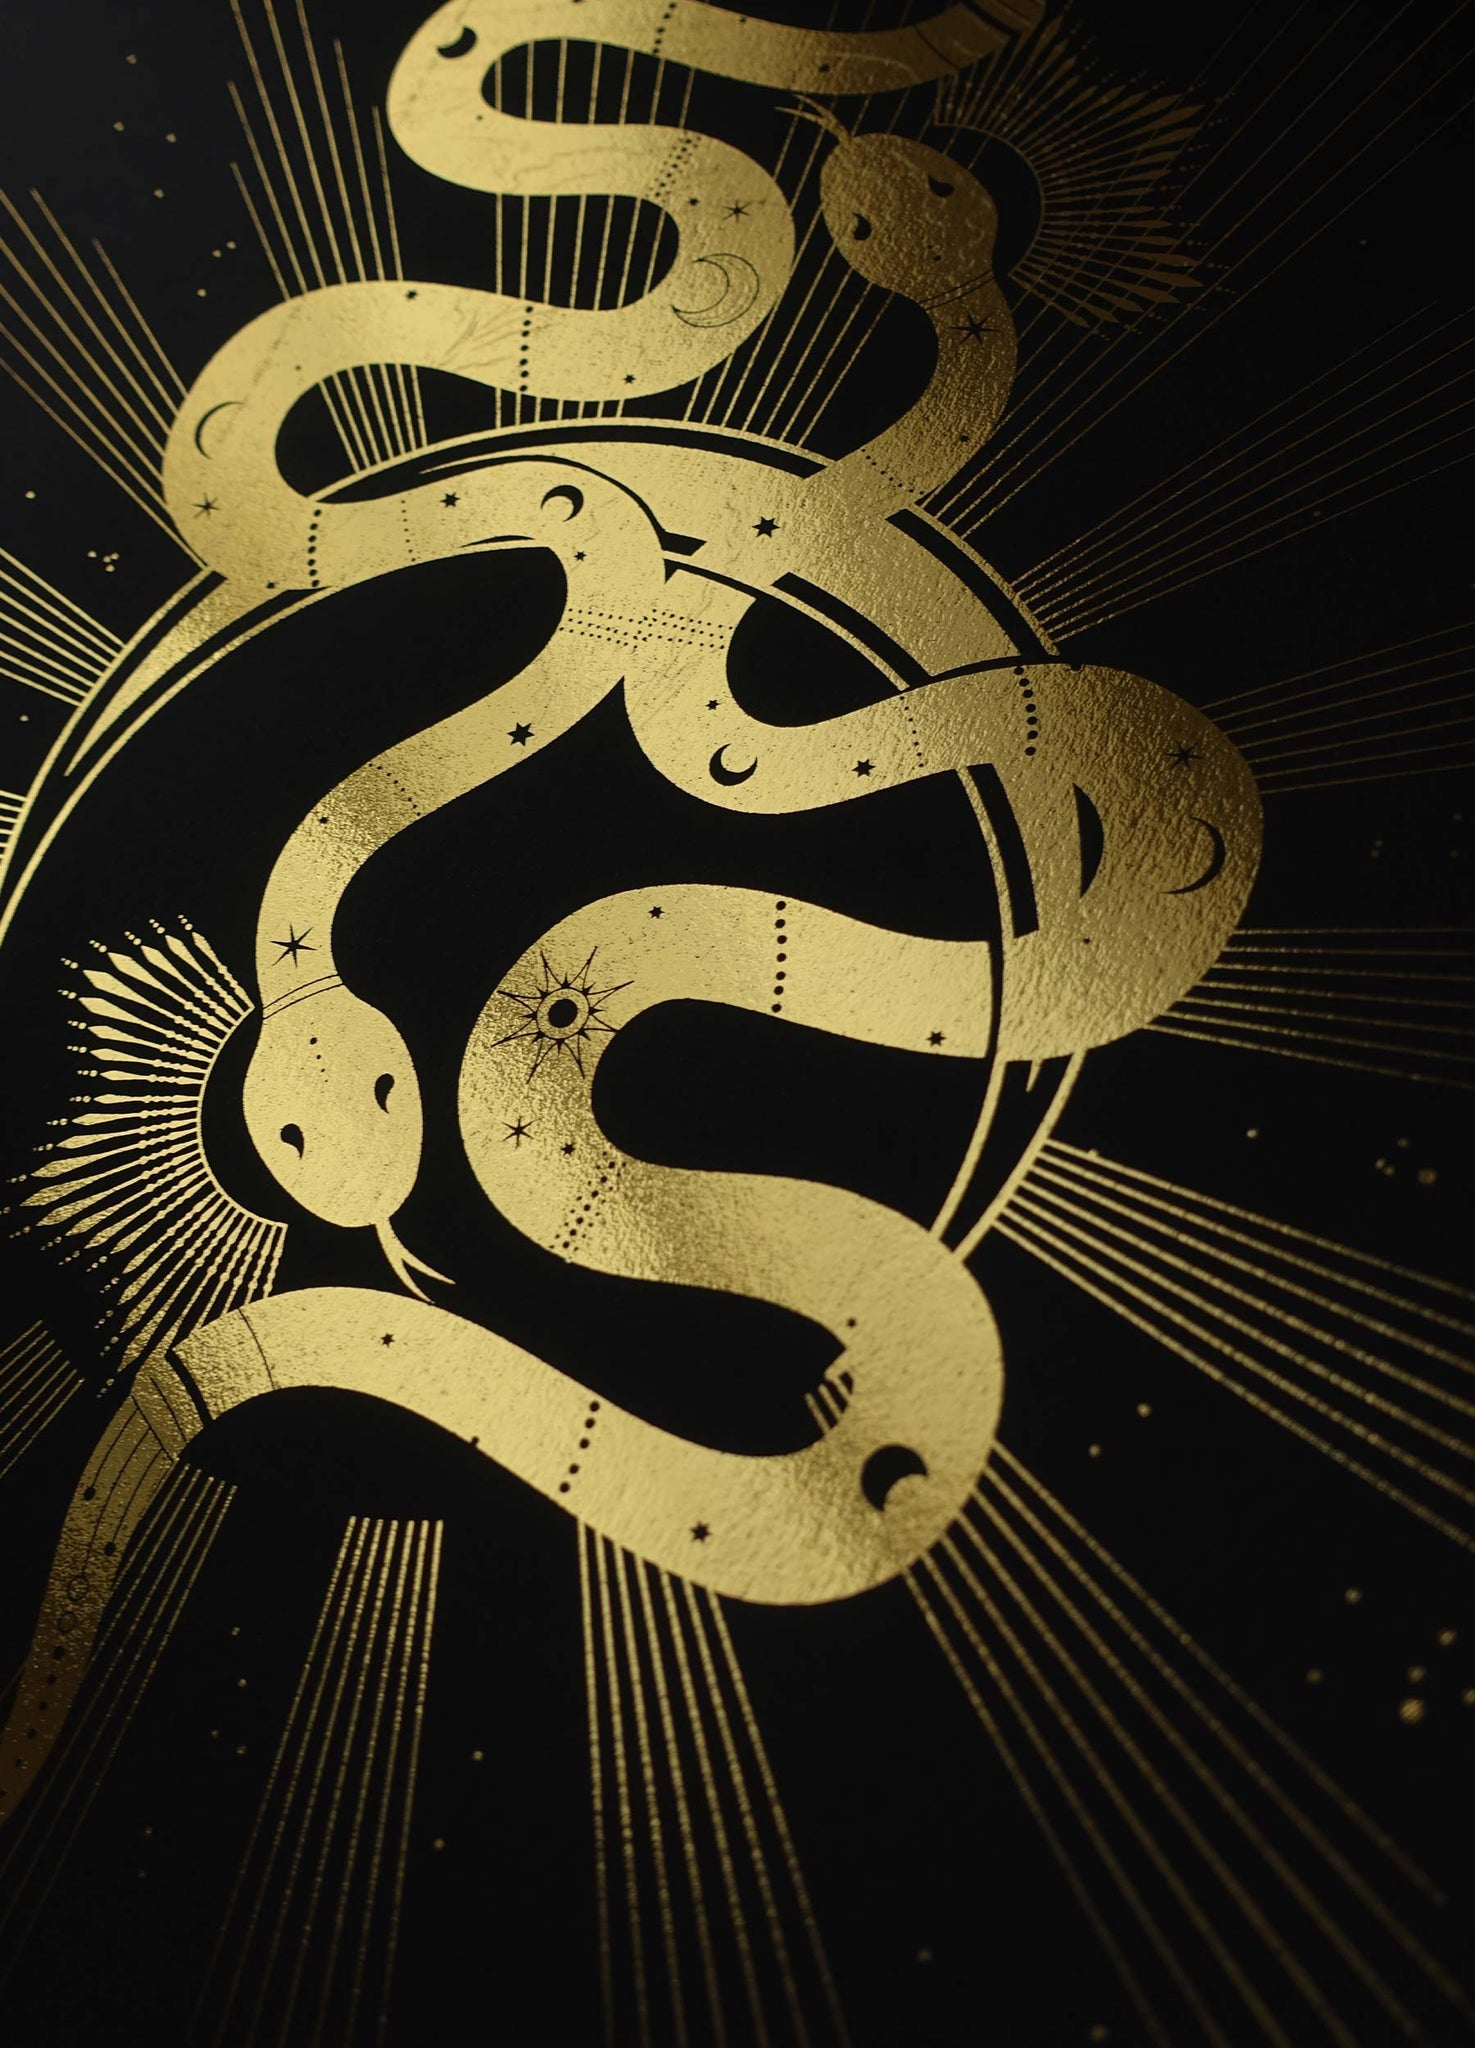 Twin Flames, soulmate snakes artwork print with gold foil on black paper by artist and studio Cocorrina